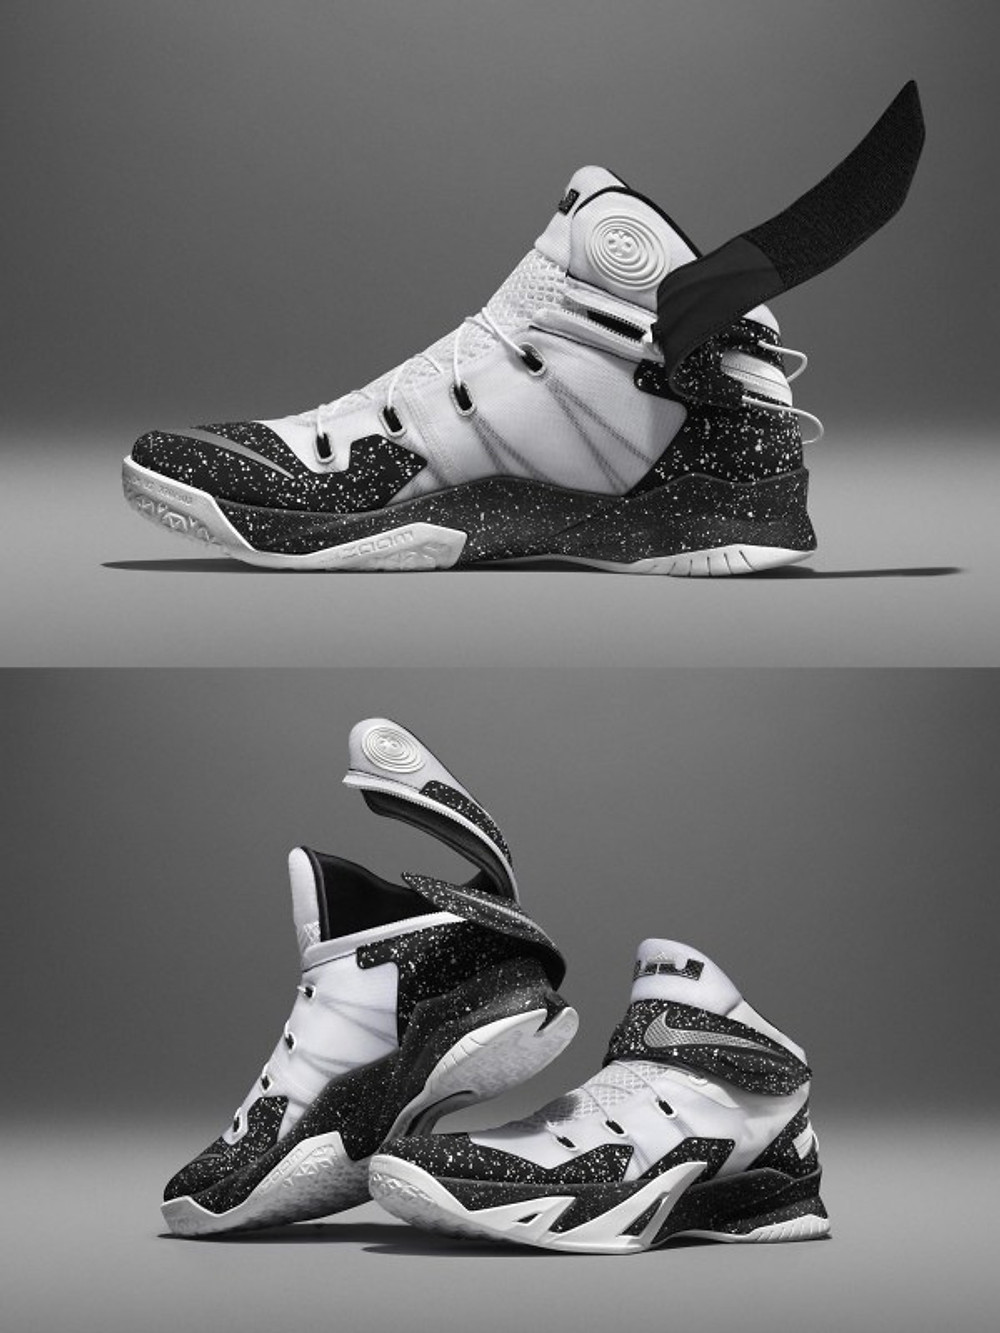 Image: Nike flyease 8, Prachatai, Flickr, CC BY 4.0